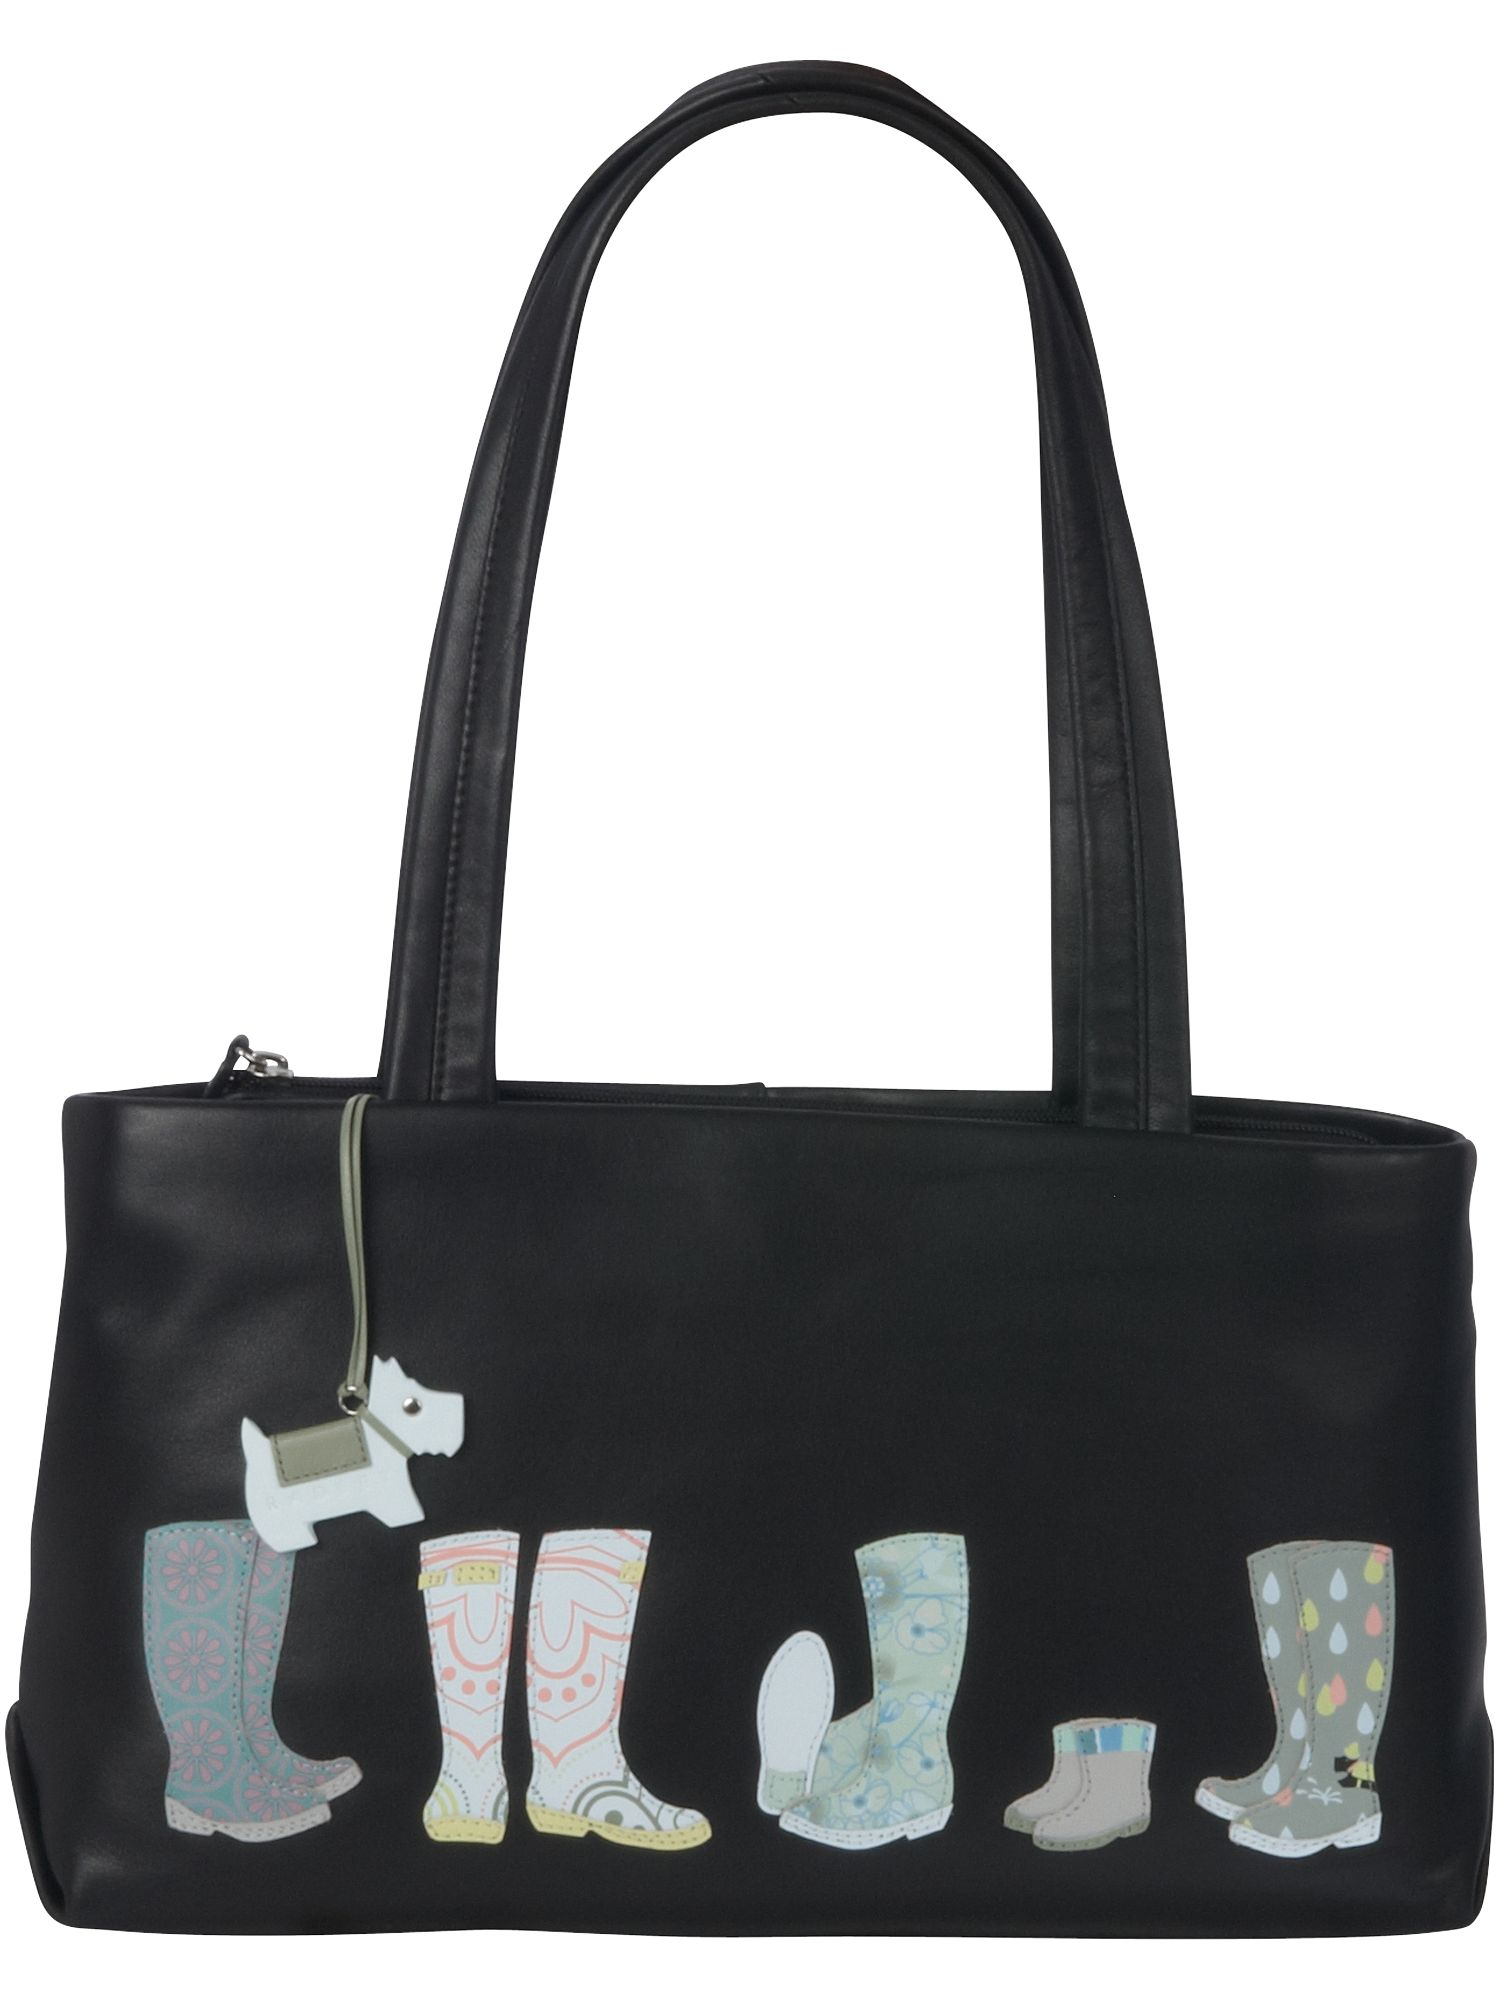 Waterloo medium leather tote bag